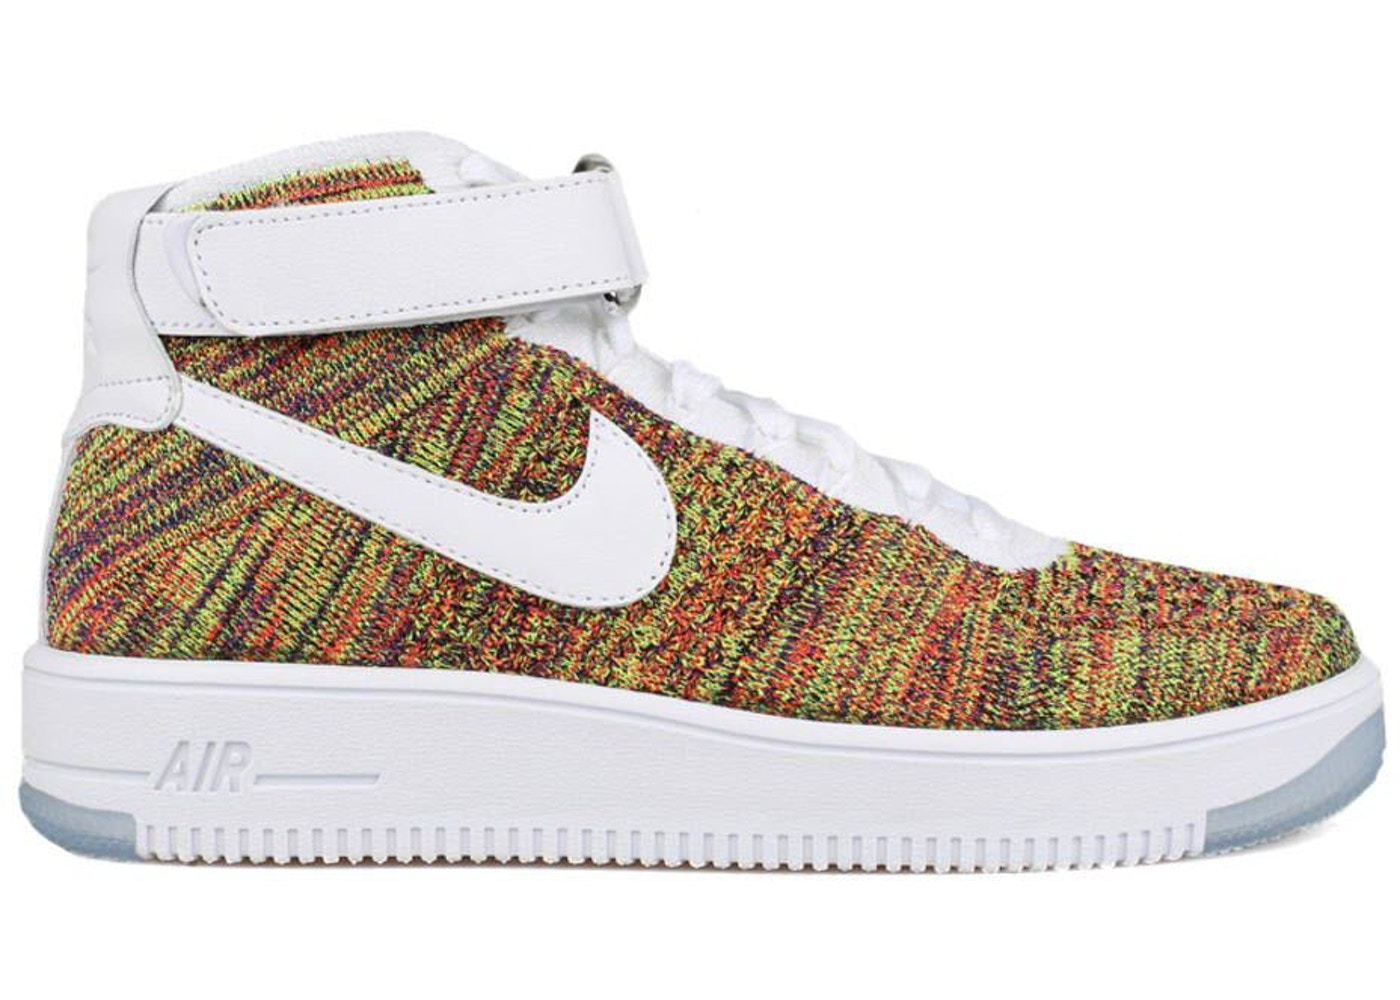 new style 0aef9 cafa6 Sell. or Ask. Size: 13. View All Bids. Air Force 1 Mid Flyknit Multi-Color  White